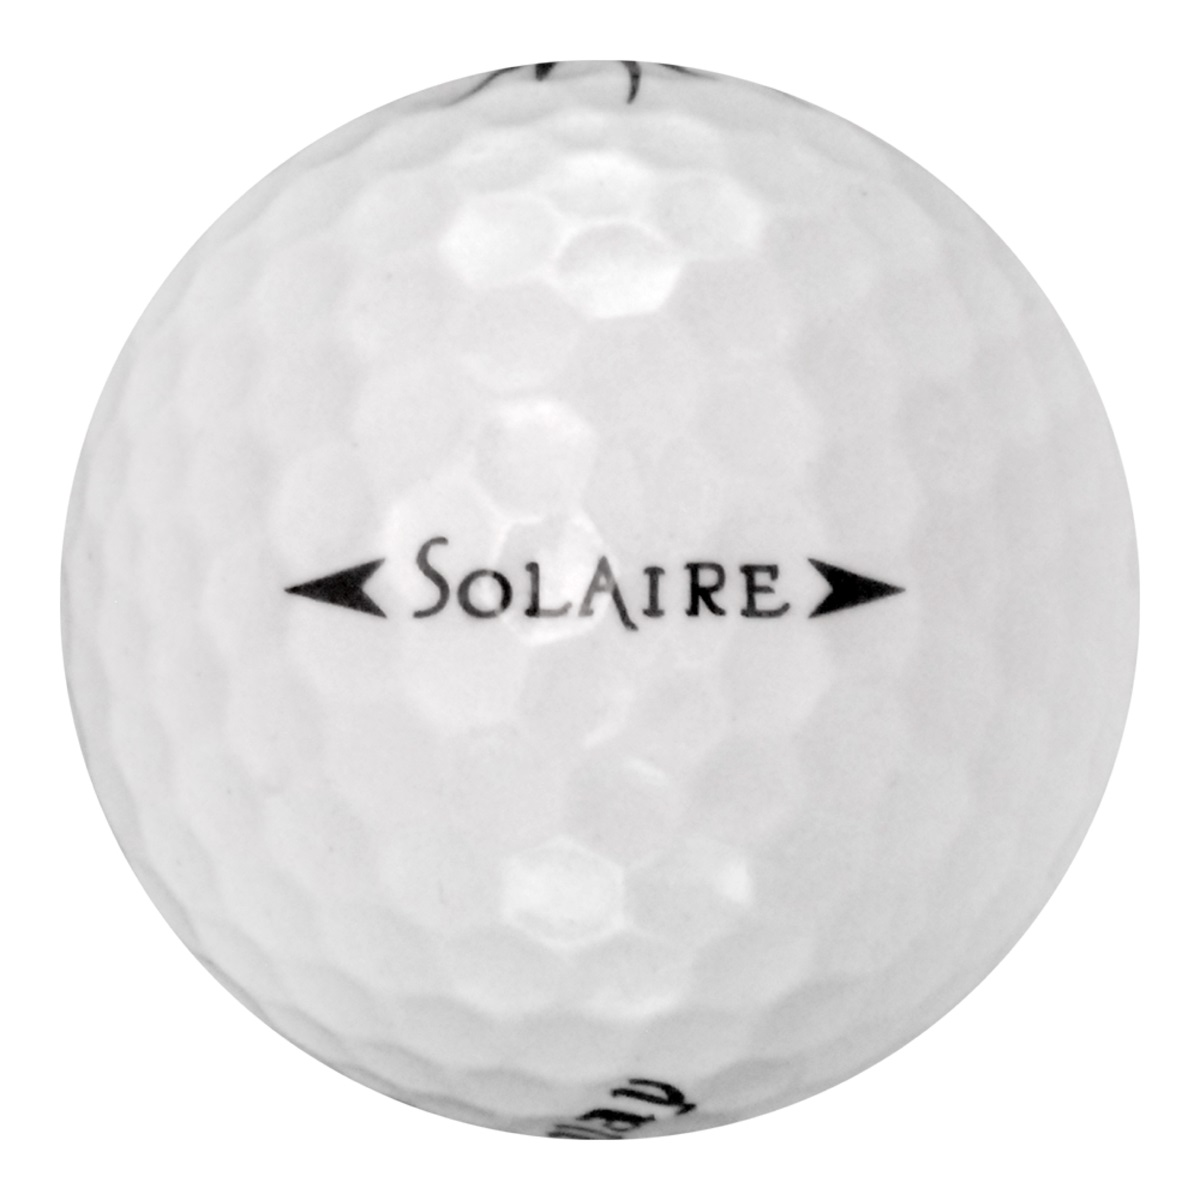 Callaway Solaire - Value (AAA) Grade - Recycled (Used) Go...